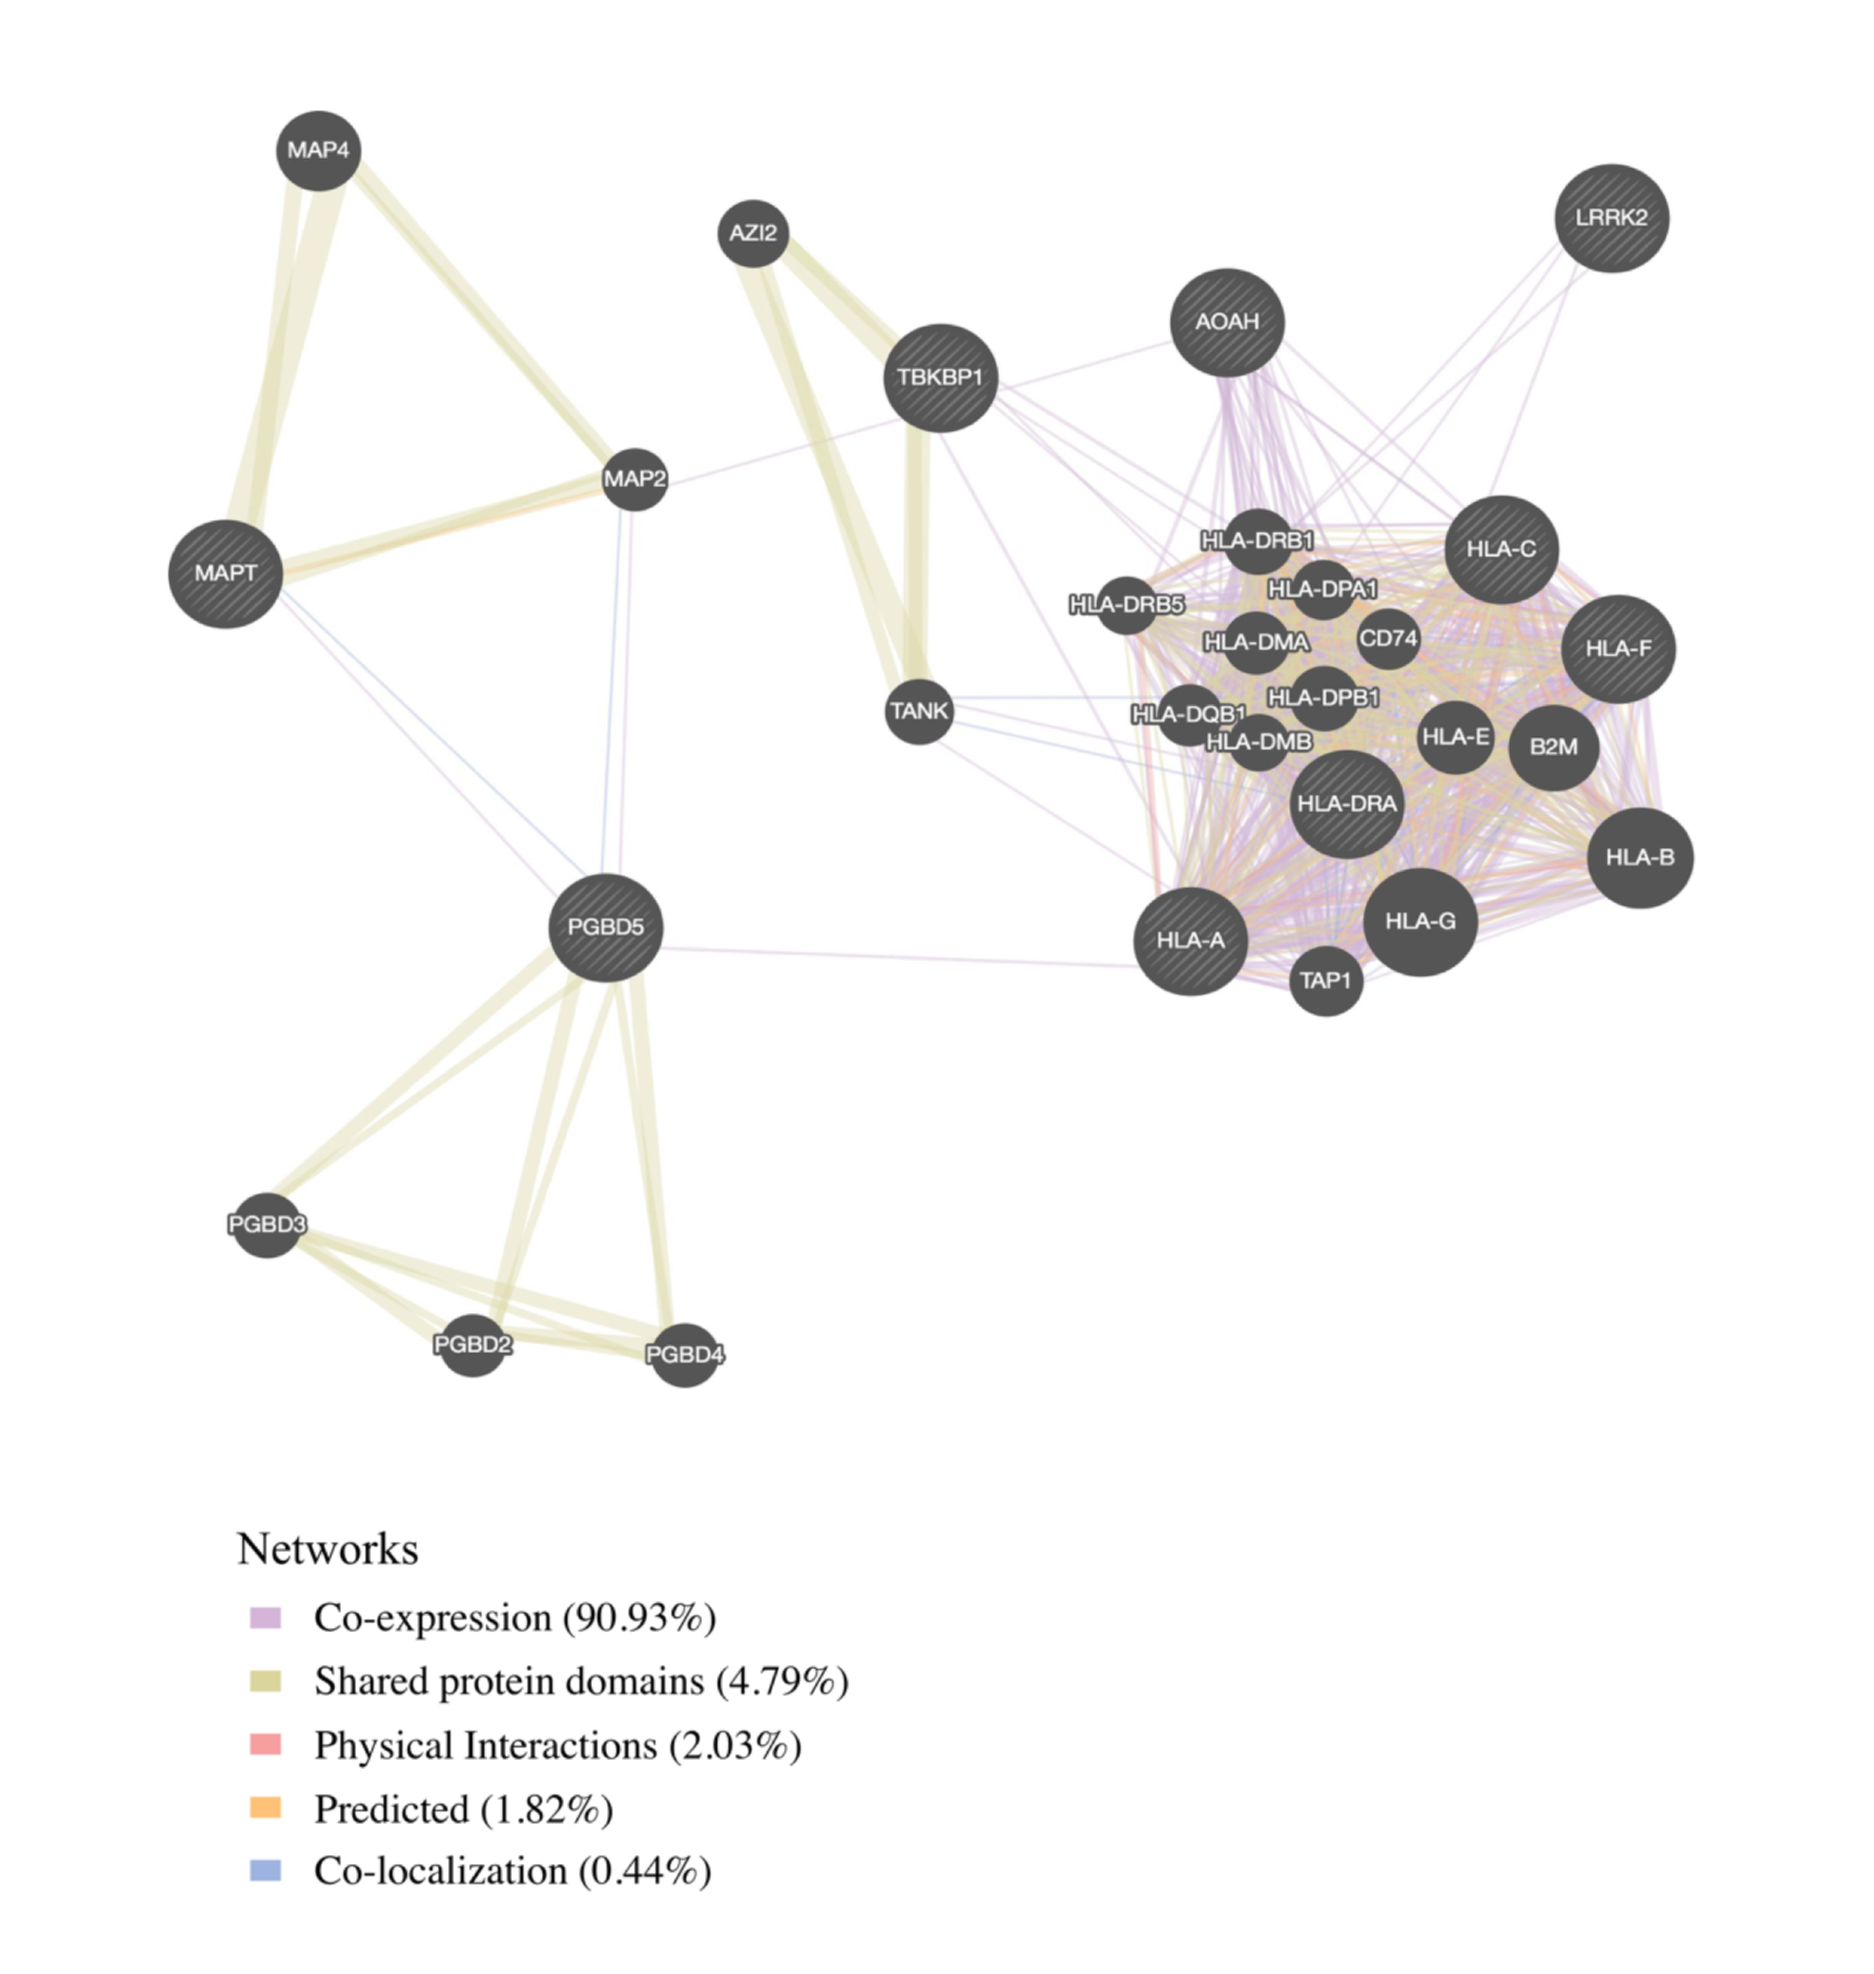 Network interaction graph predominantly illustrating co-expression and shared protein domains for functionally expressed pleiotropic genes between frontotemporal dementia (FTD) and immune-related diseases.